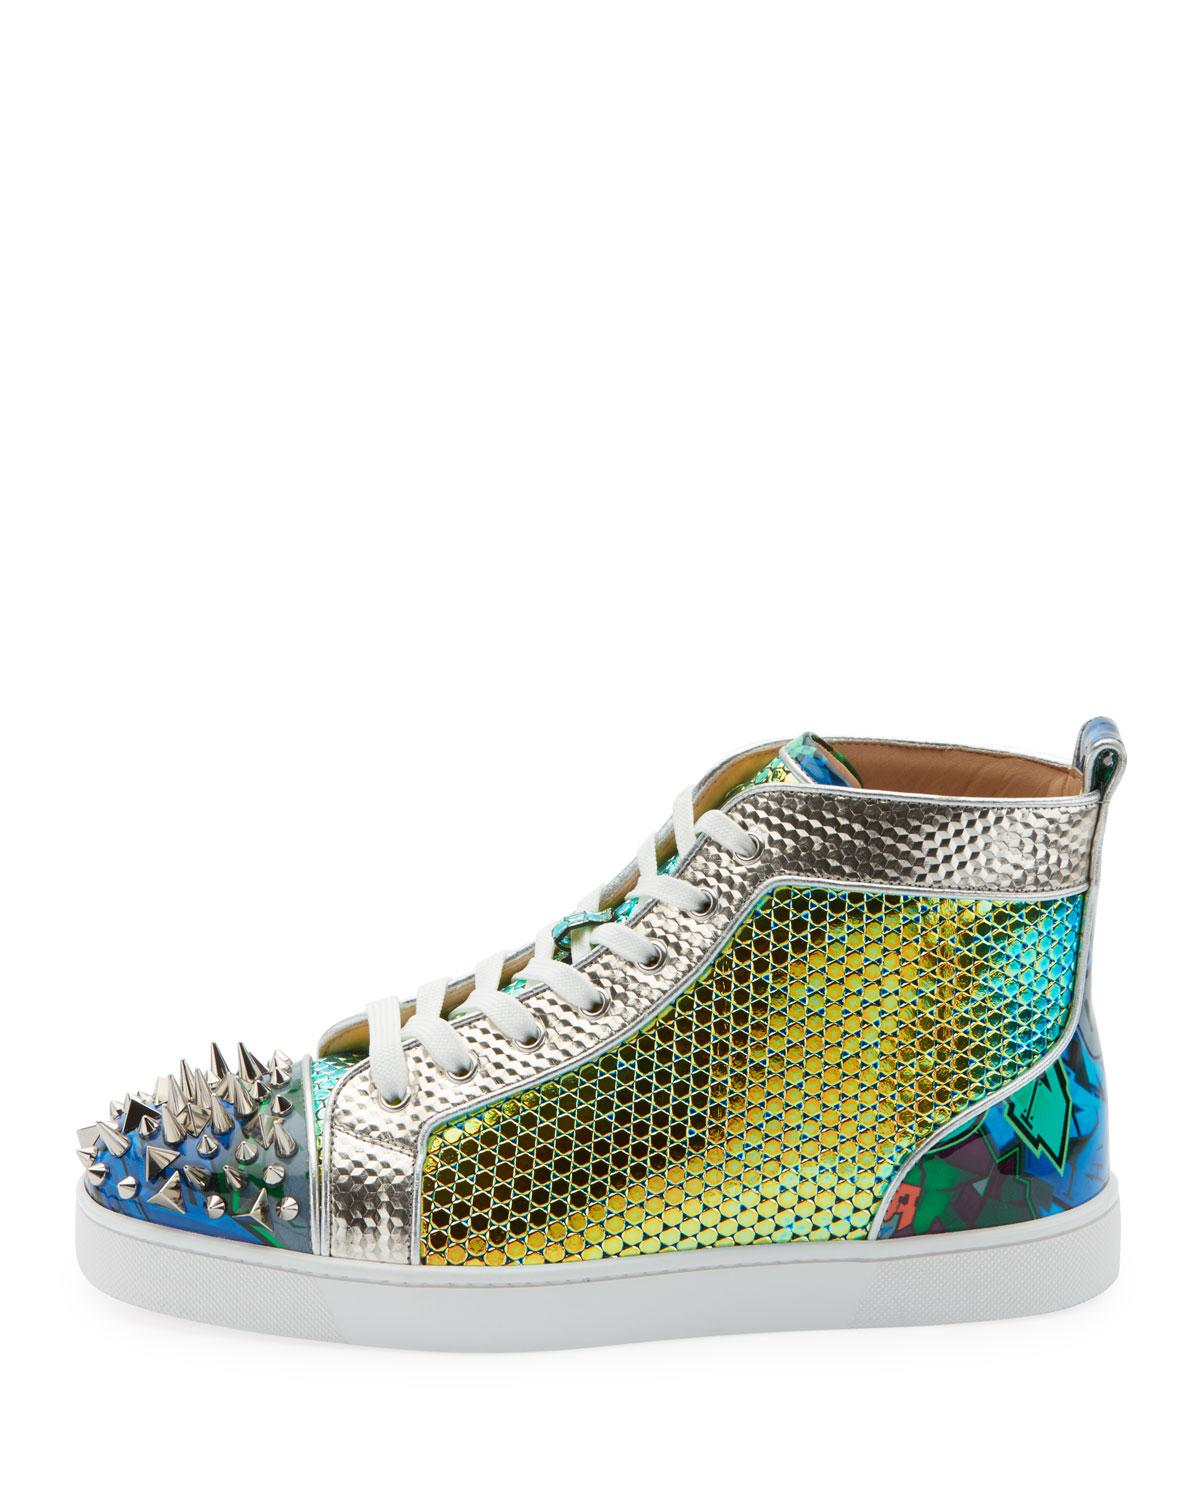 98a083aa390 Lyst - Christian Louboutin Men s Spiked Metallic Holographic Mid-top  Sneakers in Green